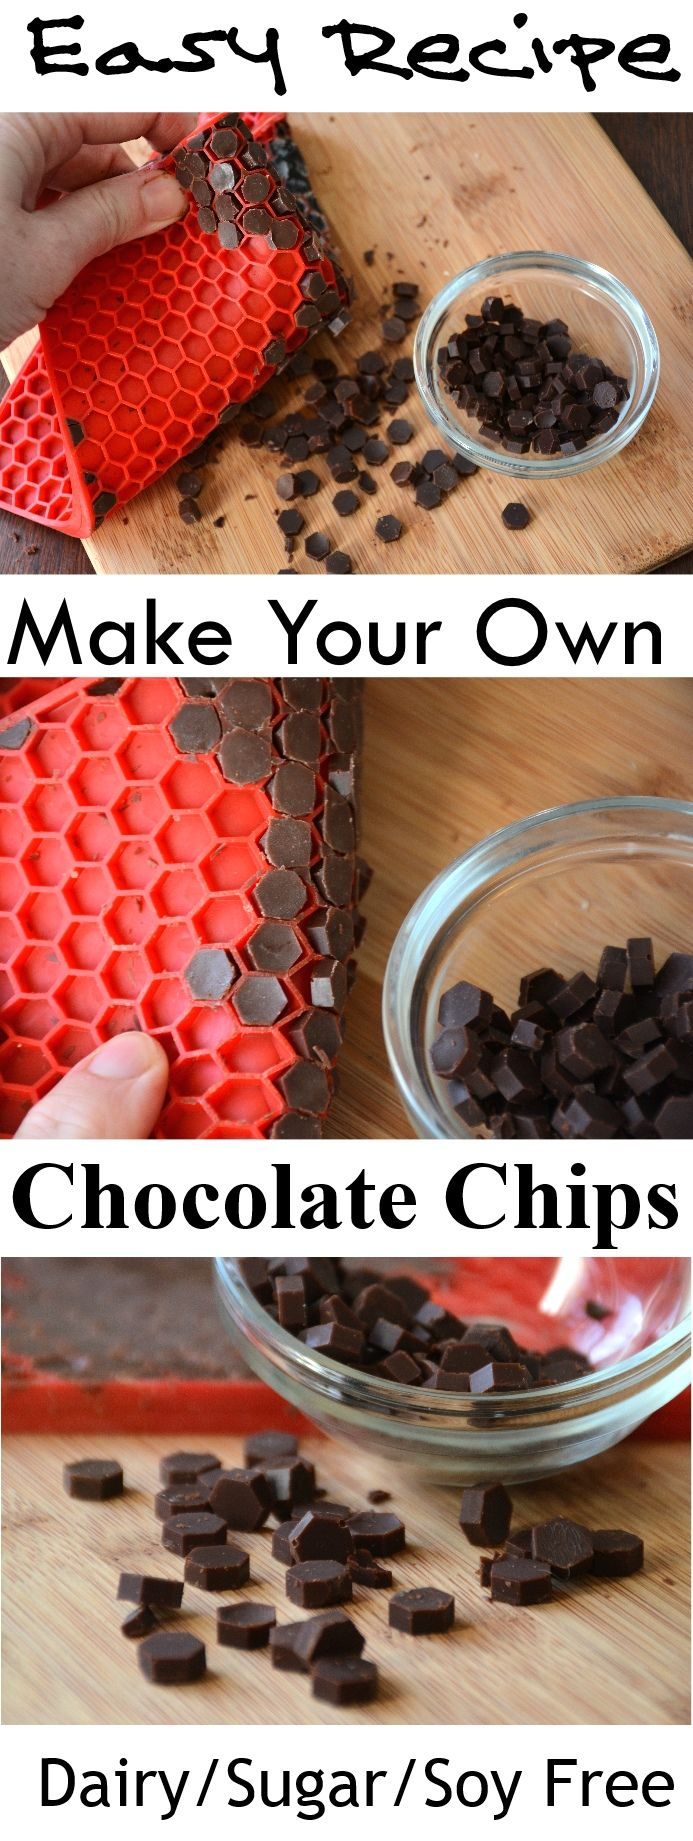 Make your own dairy-free, vegan, sugar-free chocolate chips! This recipe is so easy, and a fun one for kids to make!